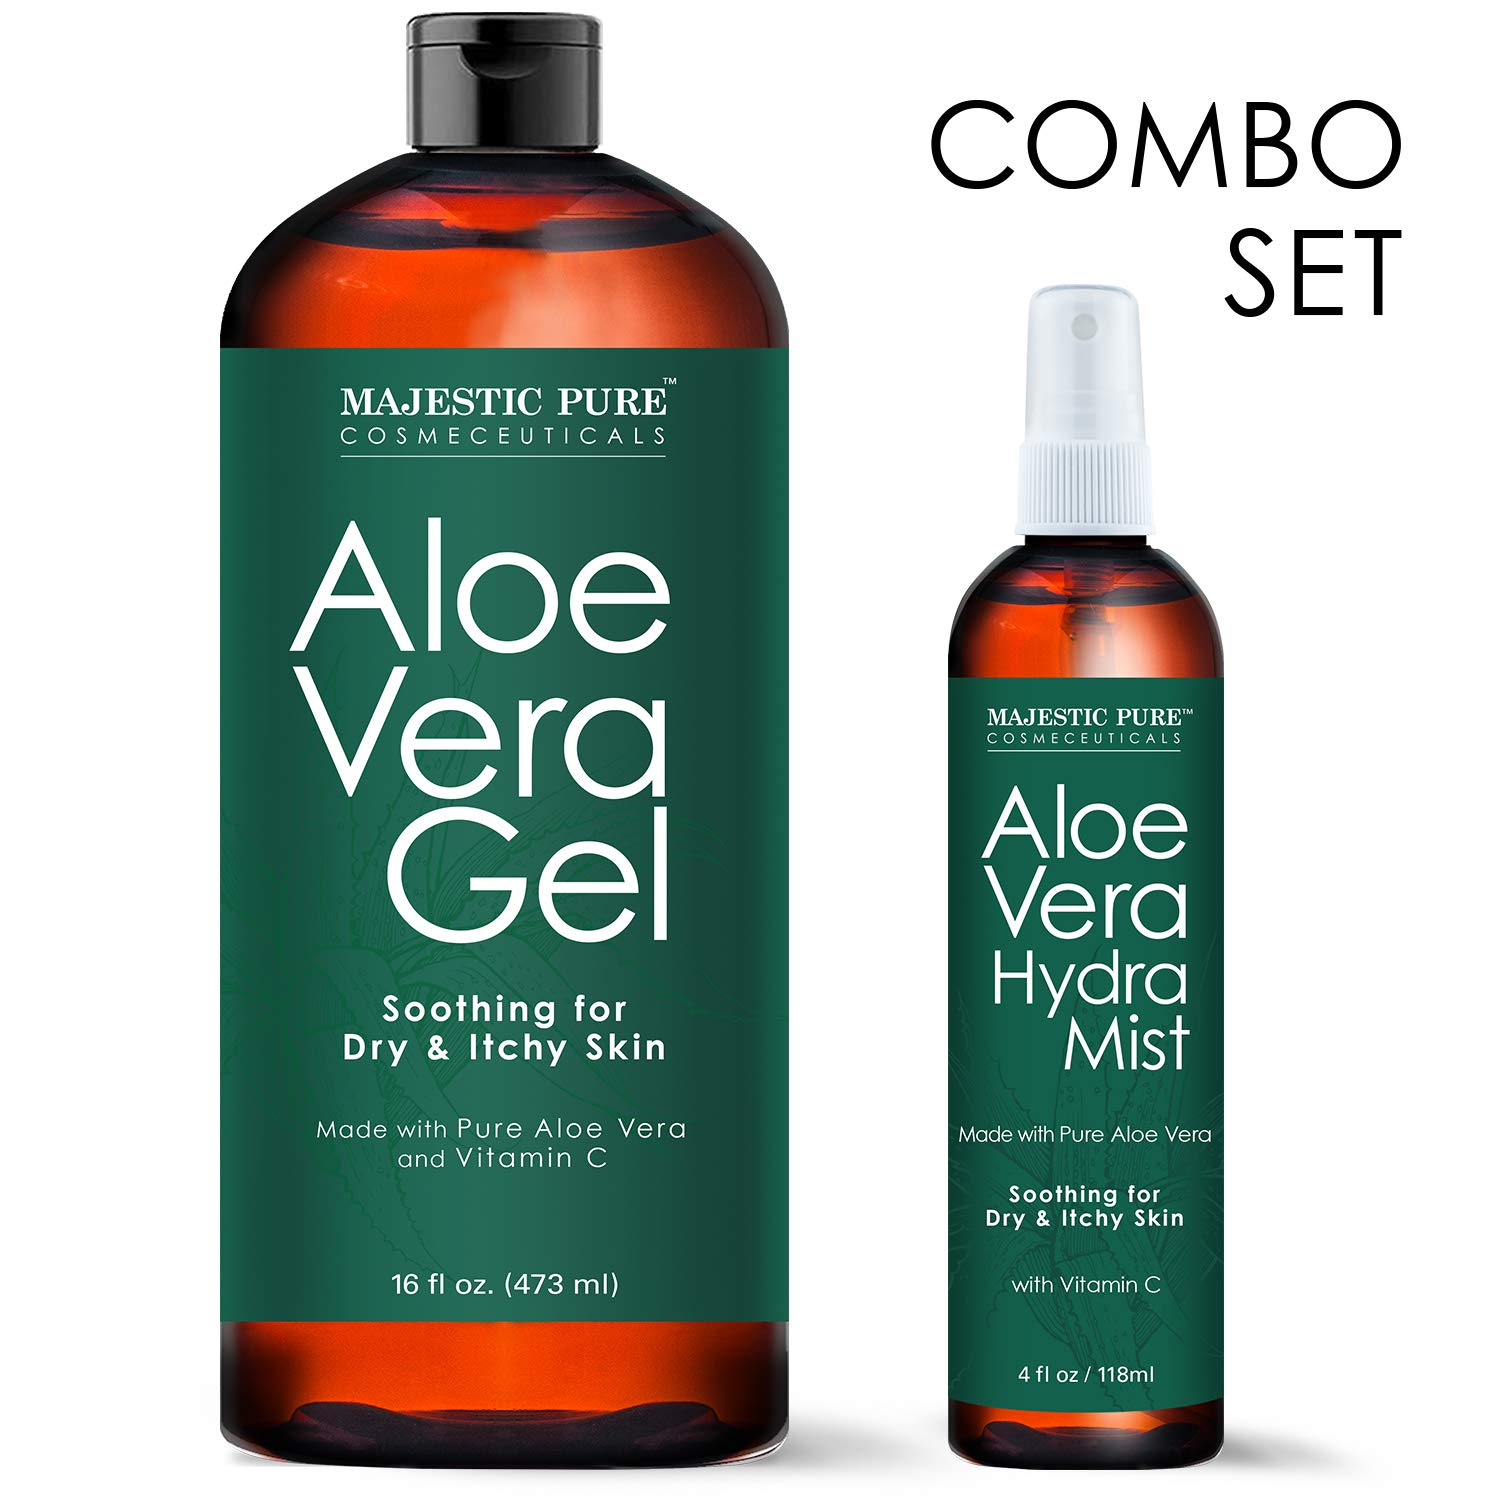 MAJESTIC PURE Aloe Vera Gel and Mist Super Combo - 16 oz Gel and 4 oz Hydra Spray - 100 Percent Pure and Natural Cold Pressed Aloe Vera for Hair Growth, Face, Body and Skin by Majestic Pure